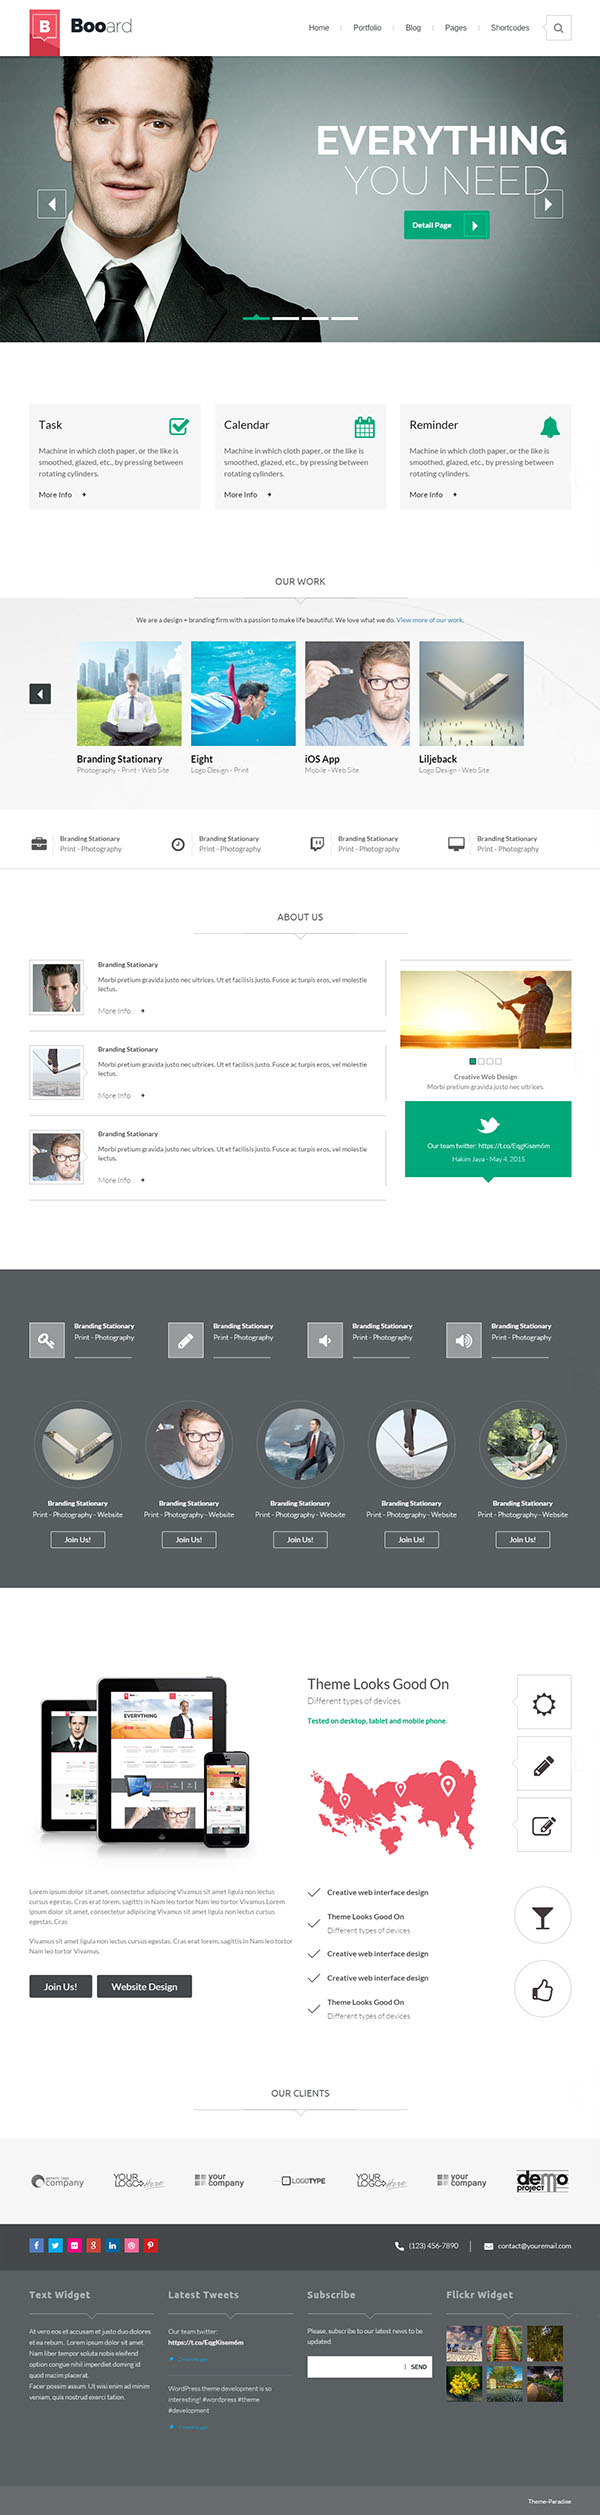 Booard - Corporate WordPress Theme